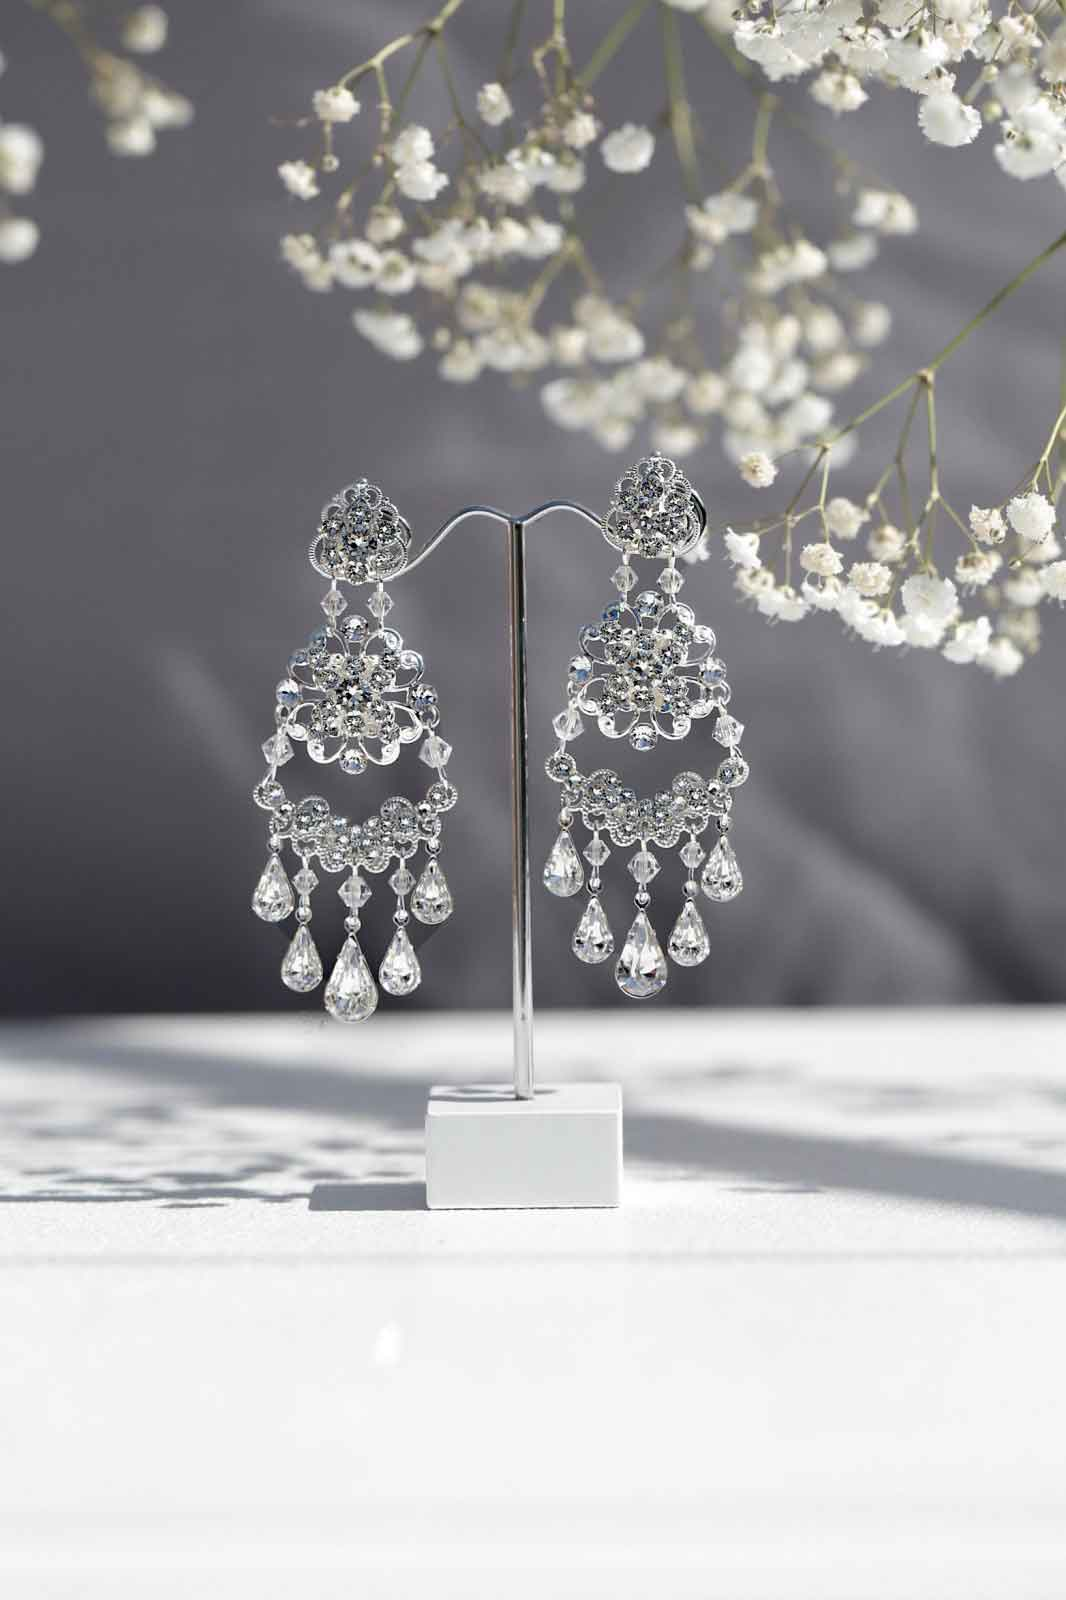 Wedding chandelier earrings